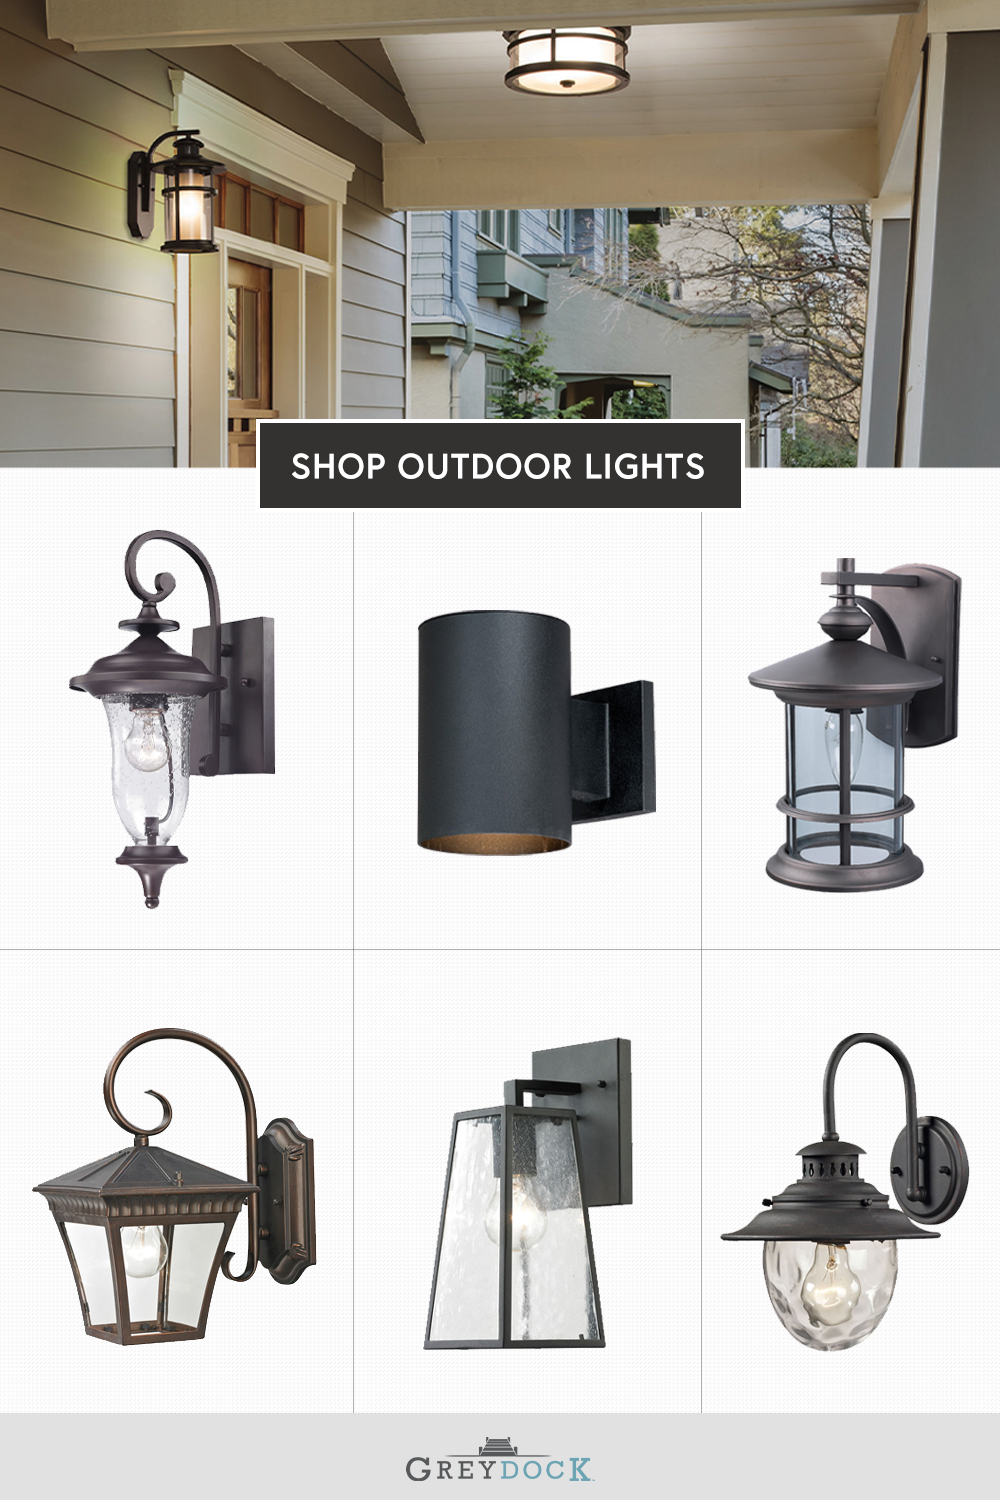 Stylish Outdoor Wall Lighting Lanterns Sconces Barn Lights And More Outdoor Lighting Design Diy Outdoor Lighting Outdoor Wall Lighting Lantern